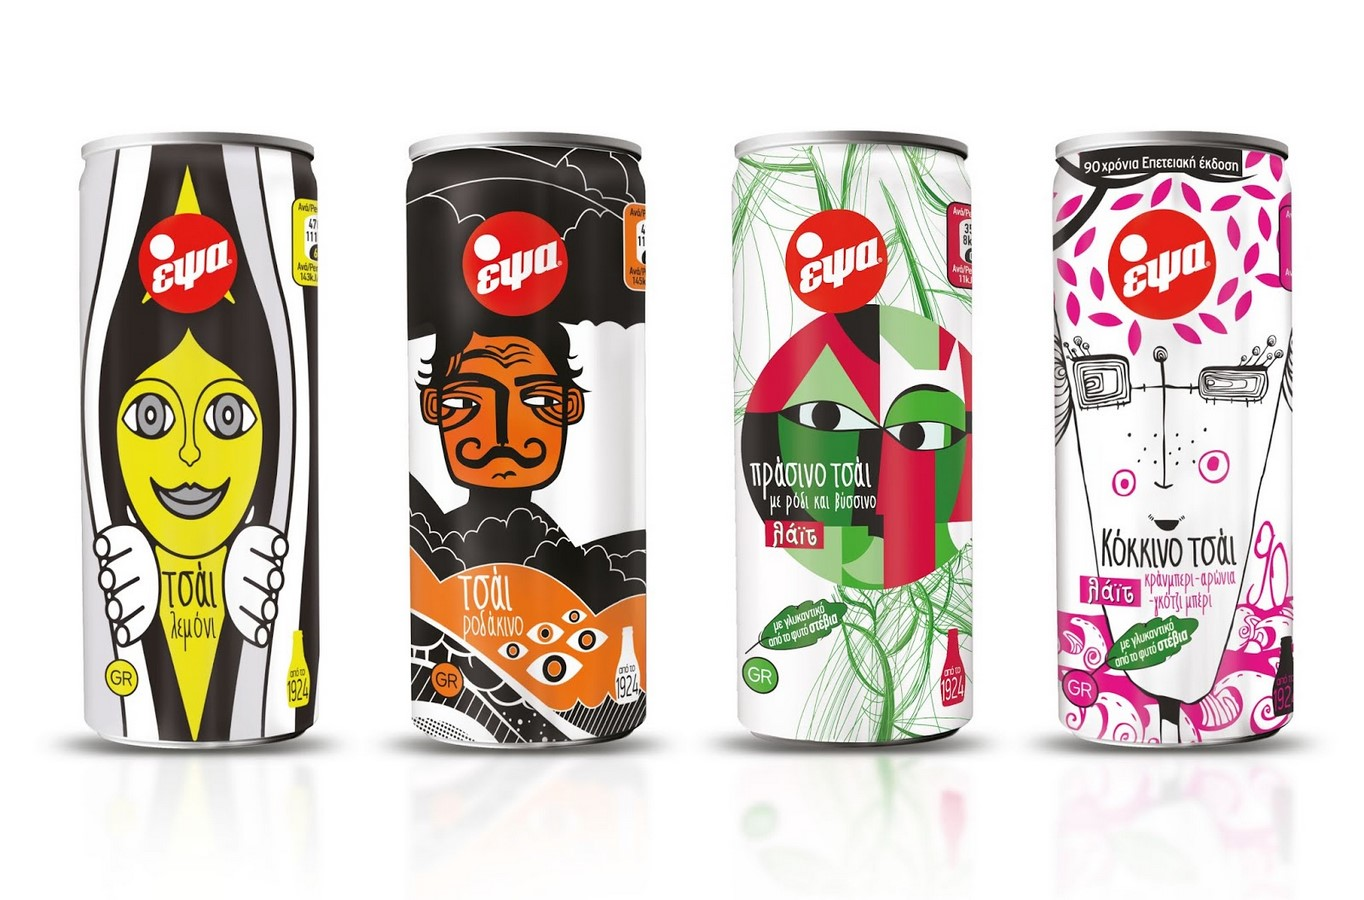 How packaging design plays an important role? Sheet2